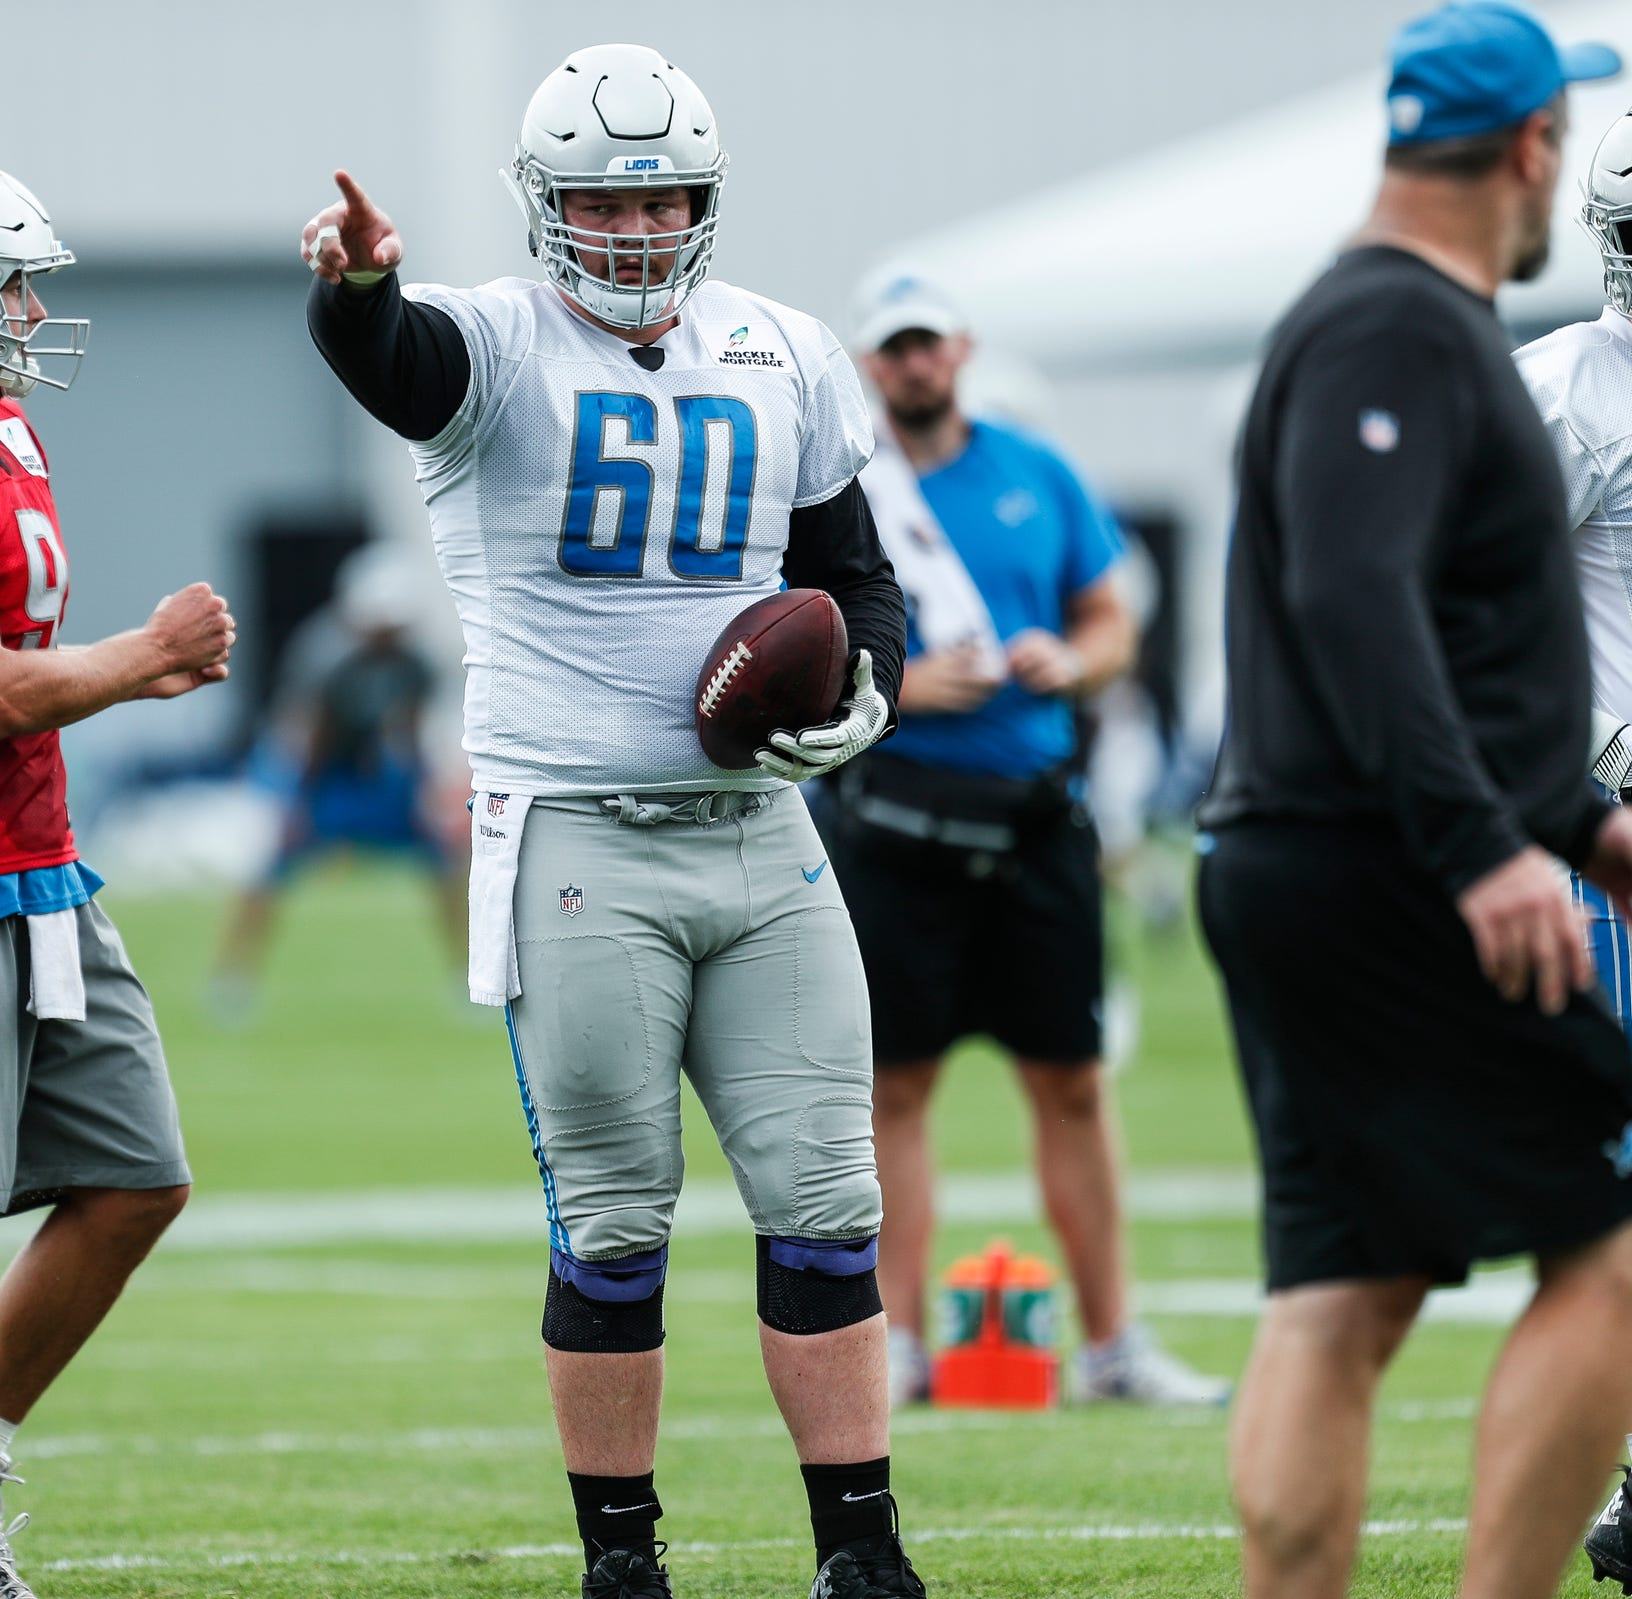 Detroit Lions' Graham Glasgow not thinking contract, out to be NFL's best center